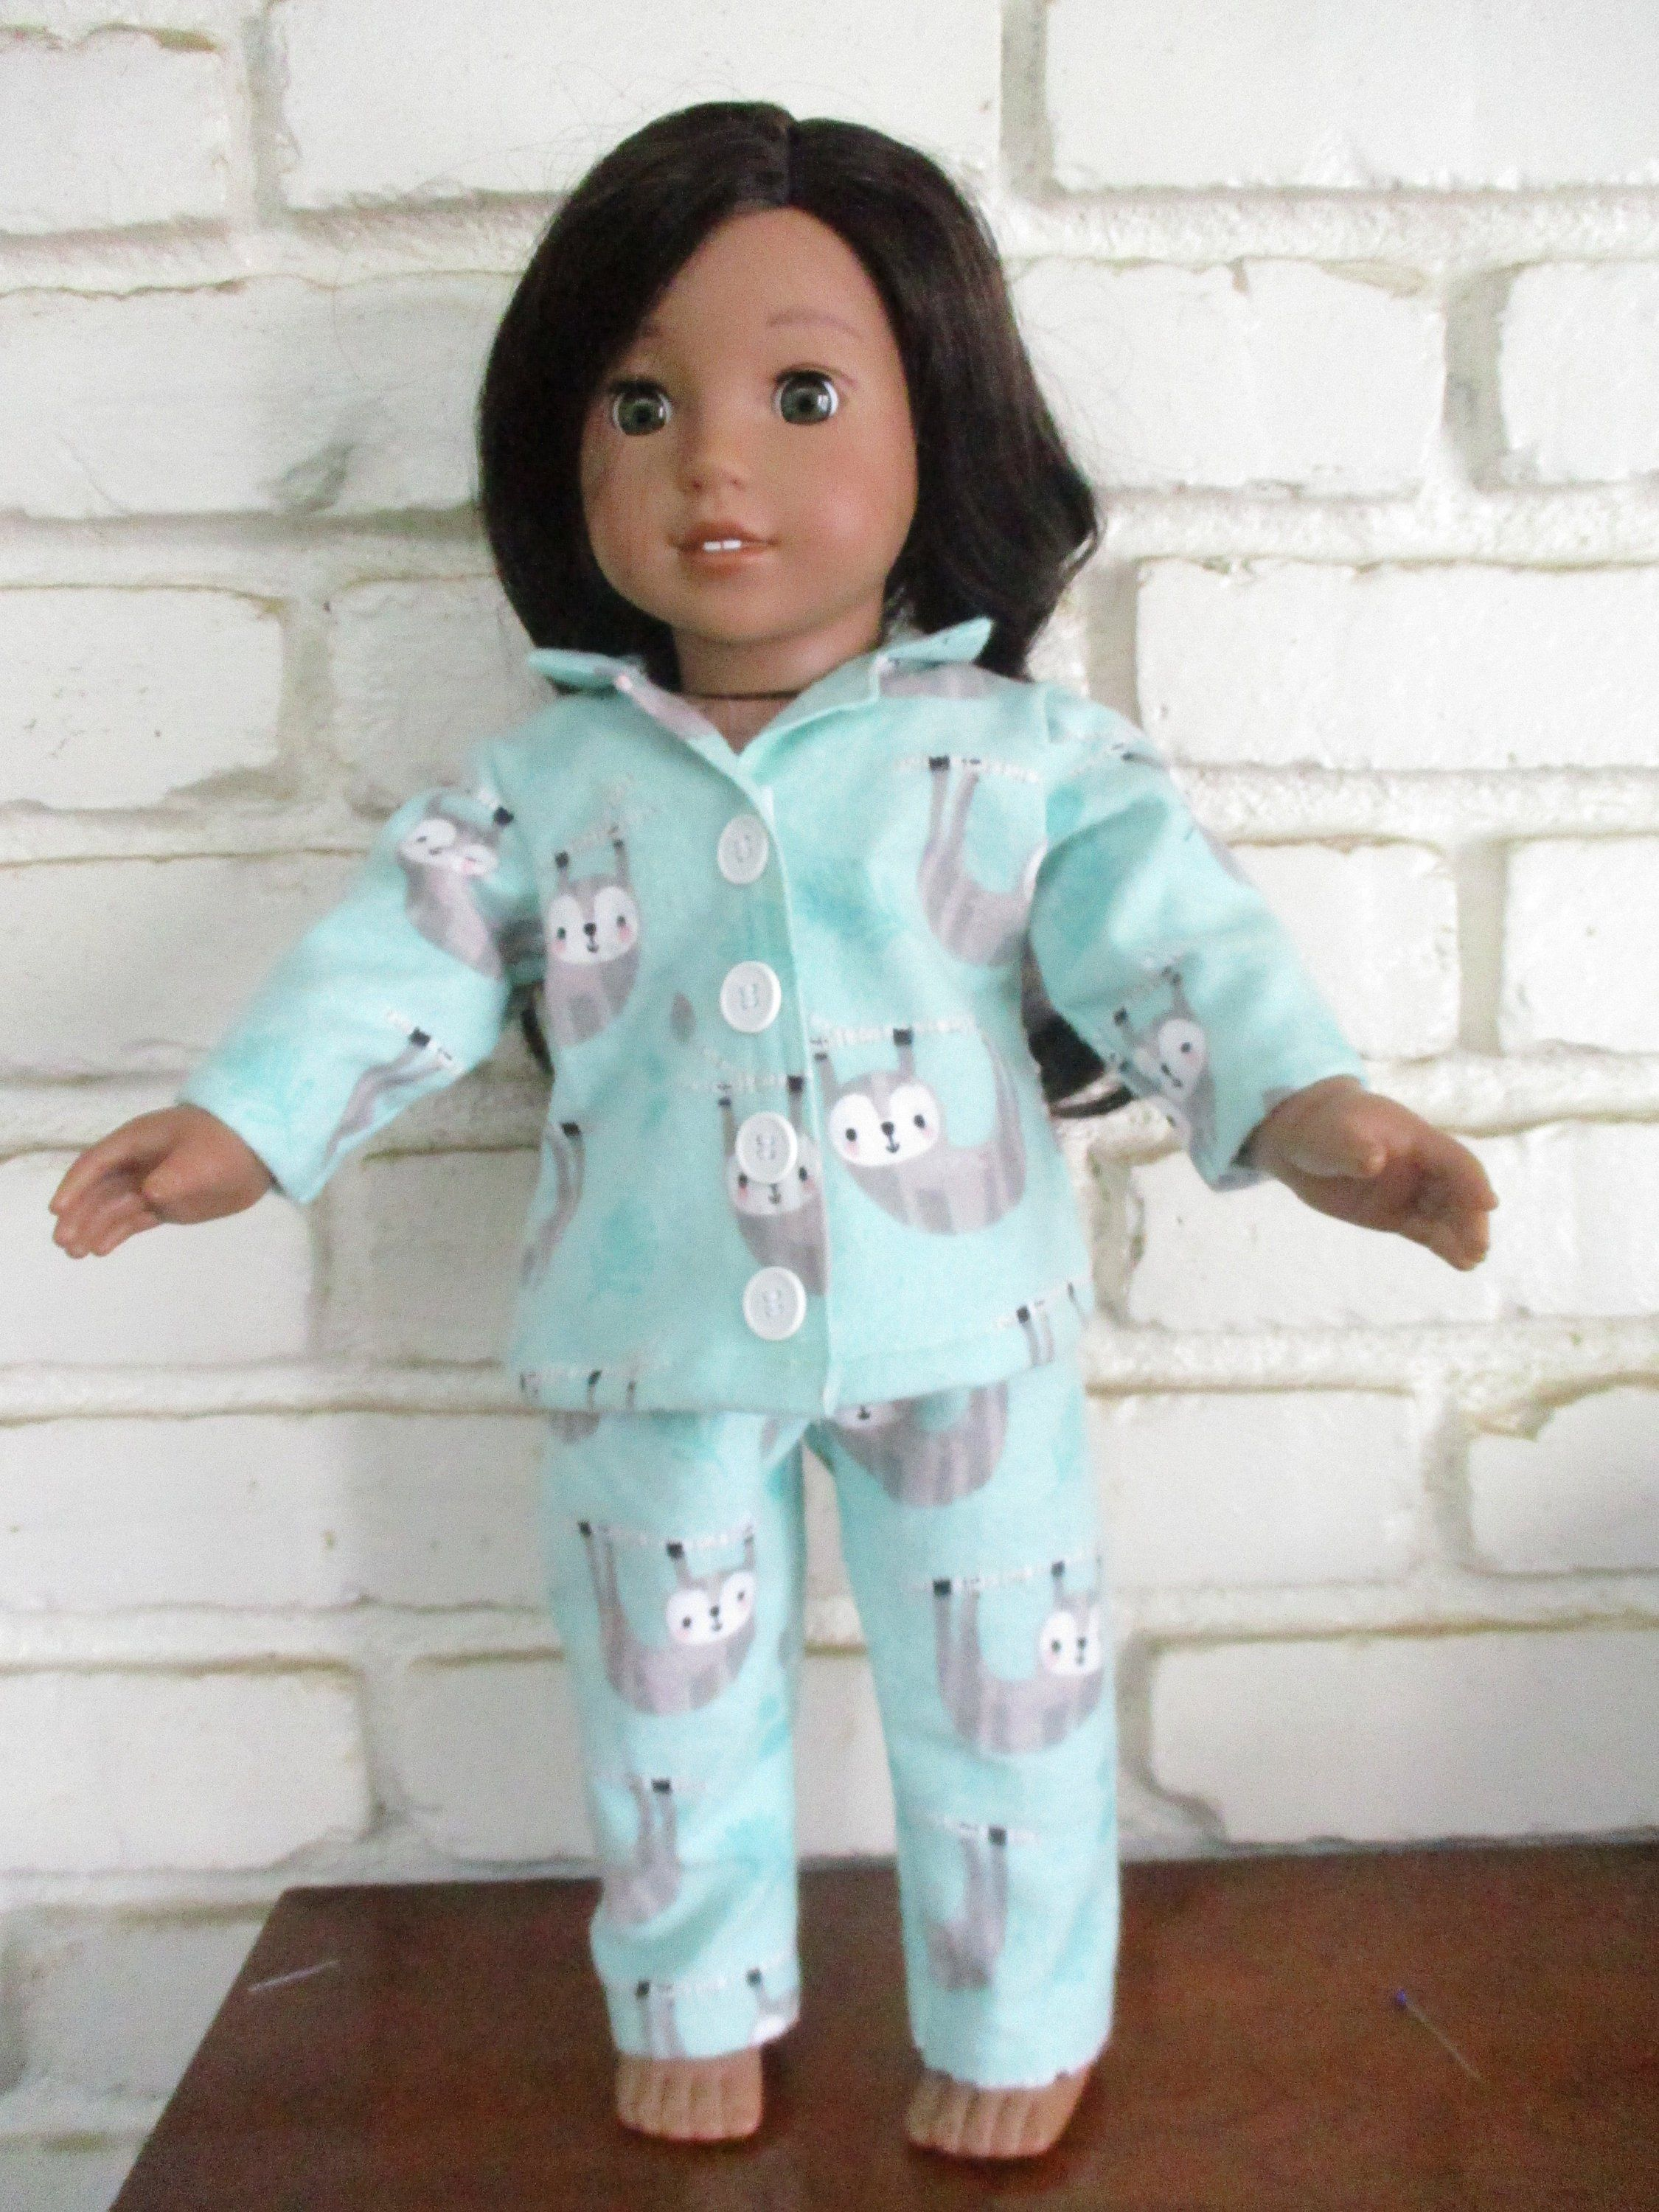 Doggie Lazy Summer Days Pajama Set 18 in Doll Clothes Fits American Girl